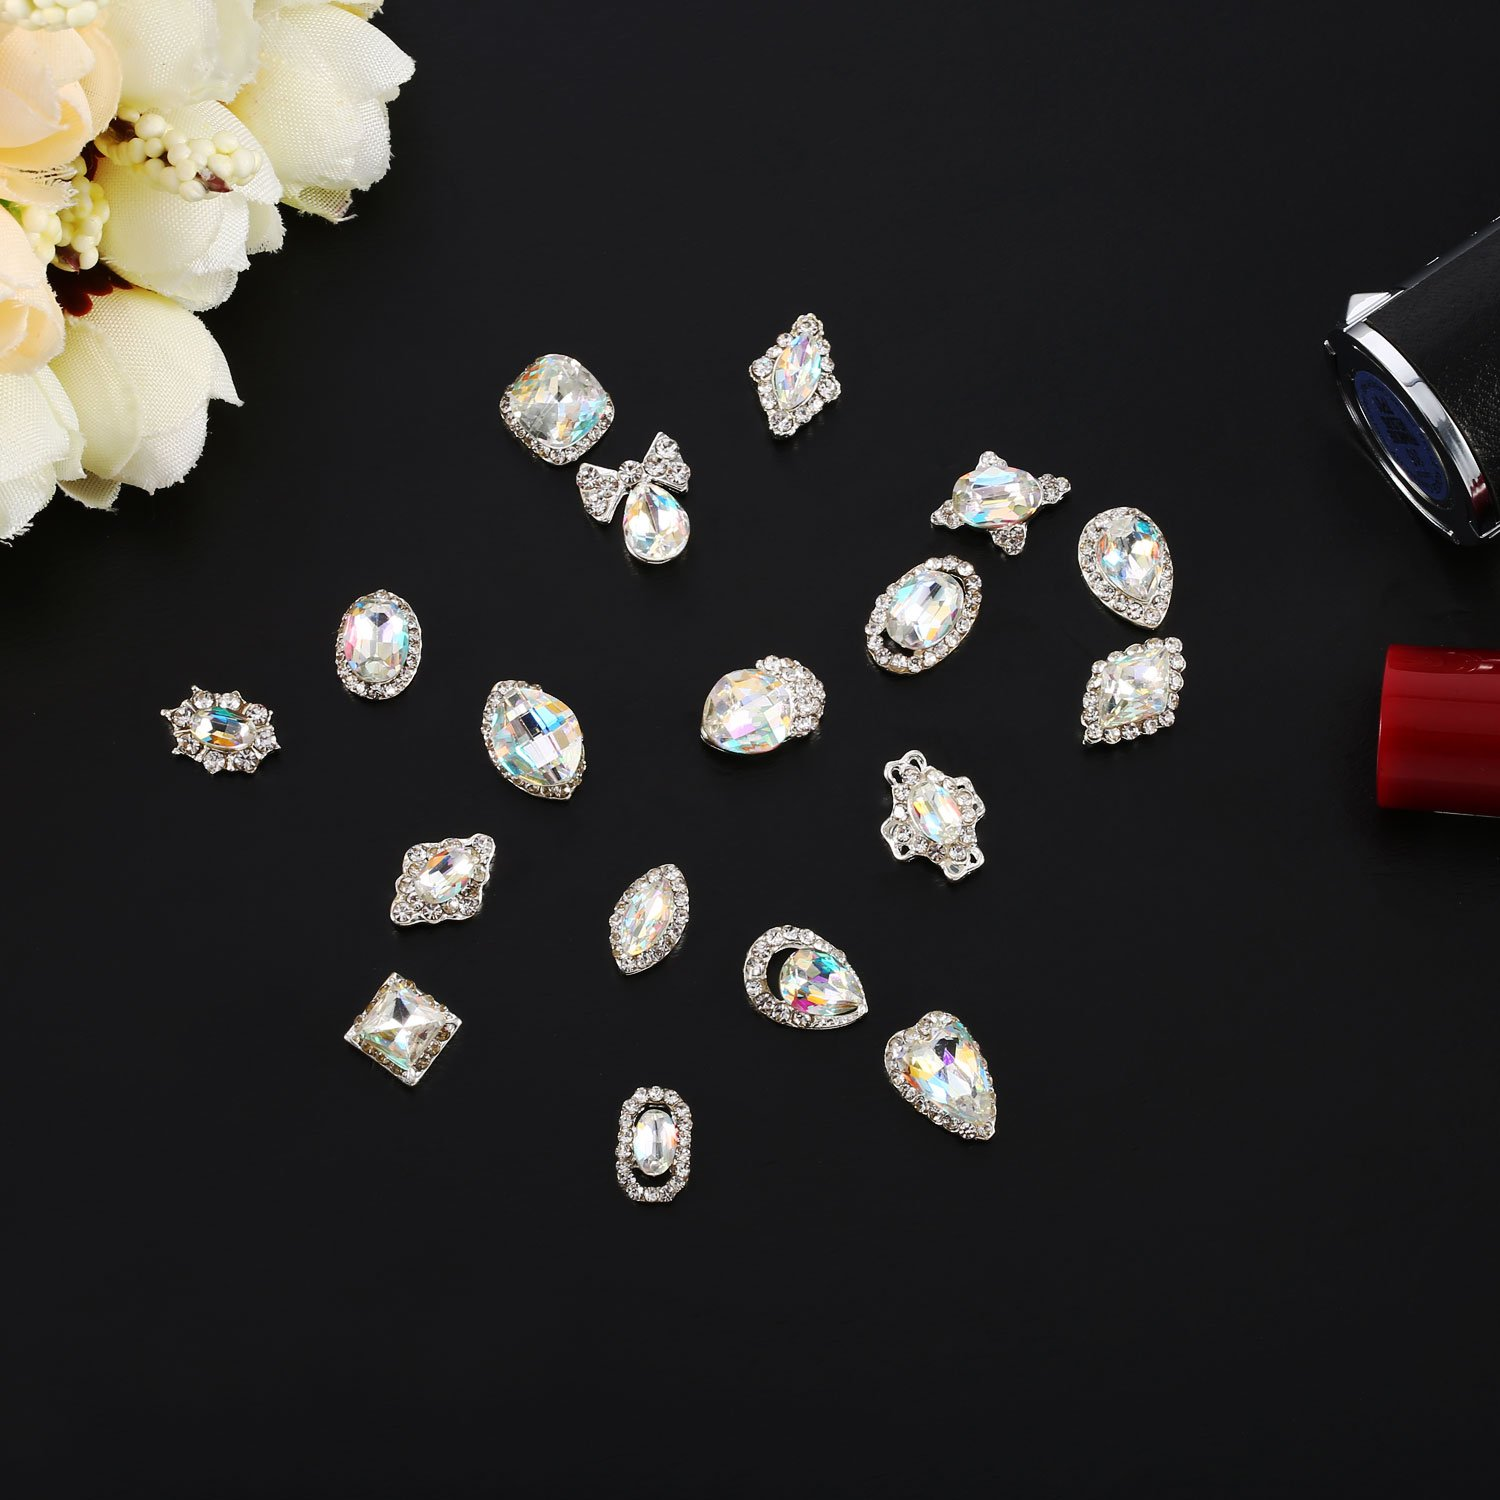 Bememo 36 Pieces 3D Nail Art Rhinestones Crystal Glass Metal Gem Stones Manicure Studs Nail Tips for Nail Art DIY (Style 1) by Bememo (Image #5)